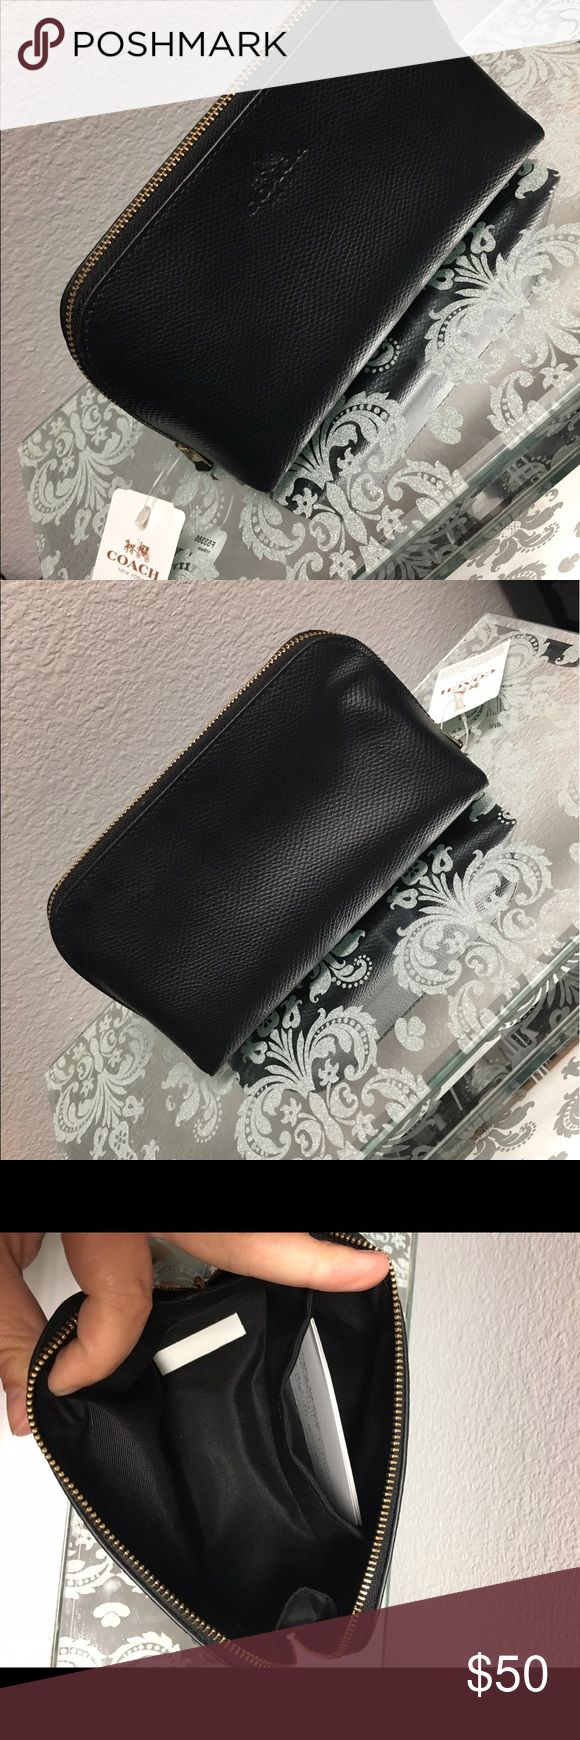 Small black Coach clutch Small black Coach leather clutch.  New wth tags ( NWT ) .  Received as a gift and never used.  No signs of wear. Perfect for small clutch, make up bag, or small bag to help organize a larger purse Coach Bags Cosmetic Bags & Cases